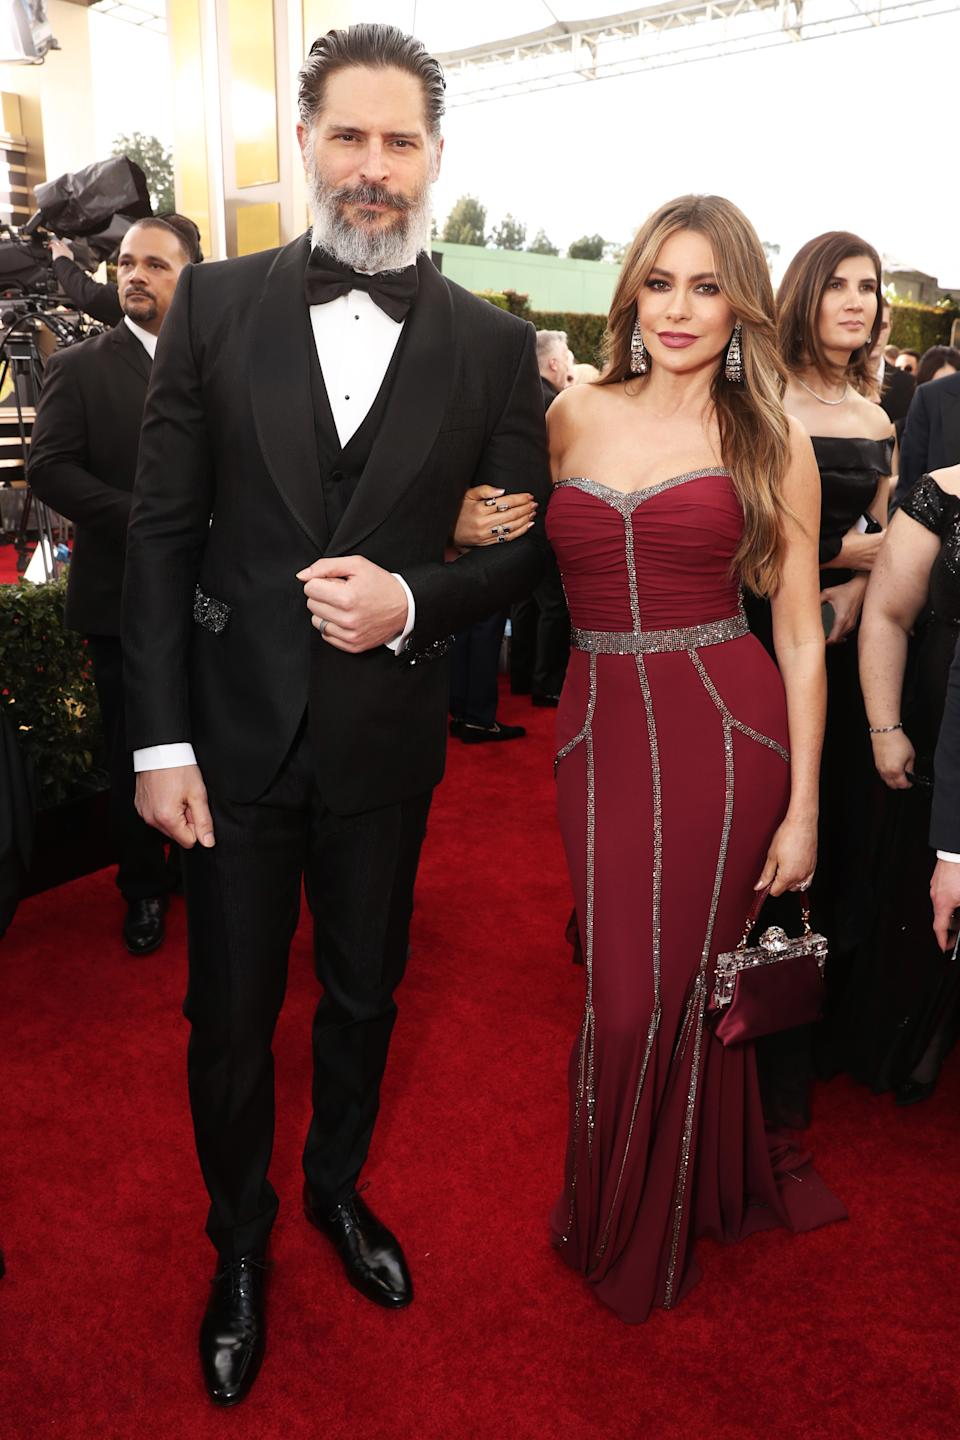 Vergara and her bearded husband sizzled in a crimson gown, with a ruched bodice. (Photo by: Todd Williamson/NBC/NBCU Photo Bank via Getty Images)